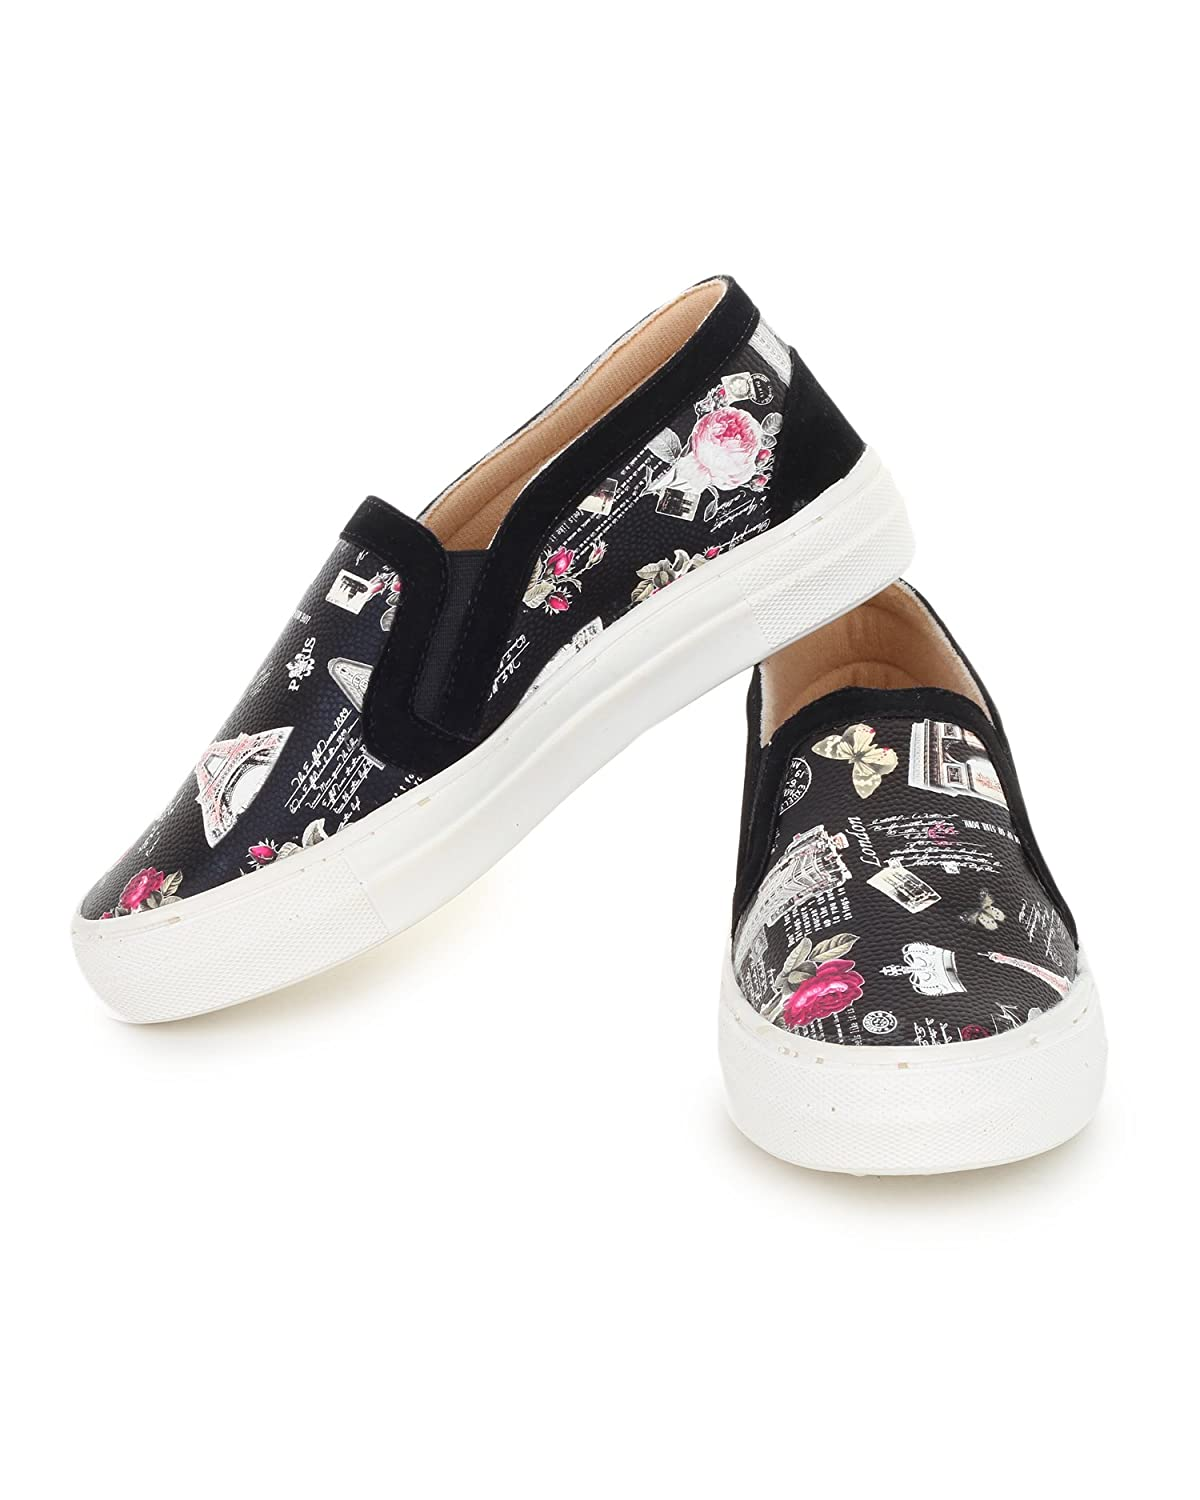 80ee0b9ac46 TRASE Comfy Black White Loafer   Sneaker Casual Shoes for Women Ladies for  Summers  Buy Online at Low Prices in India - Amazon.in